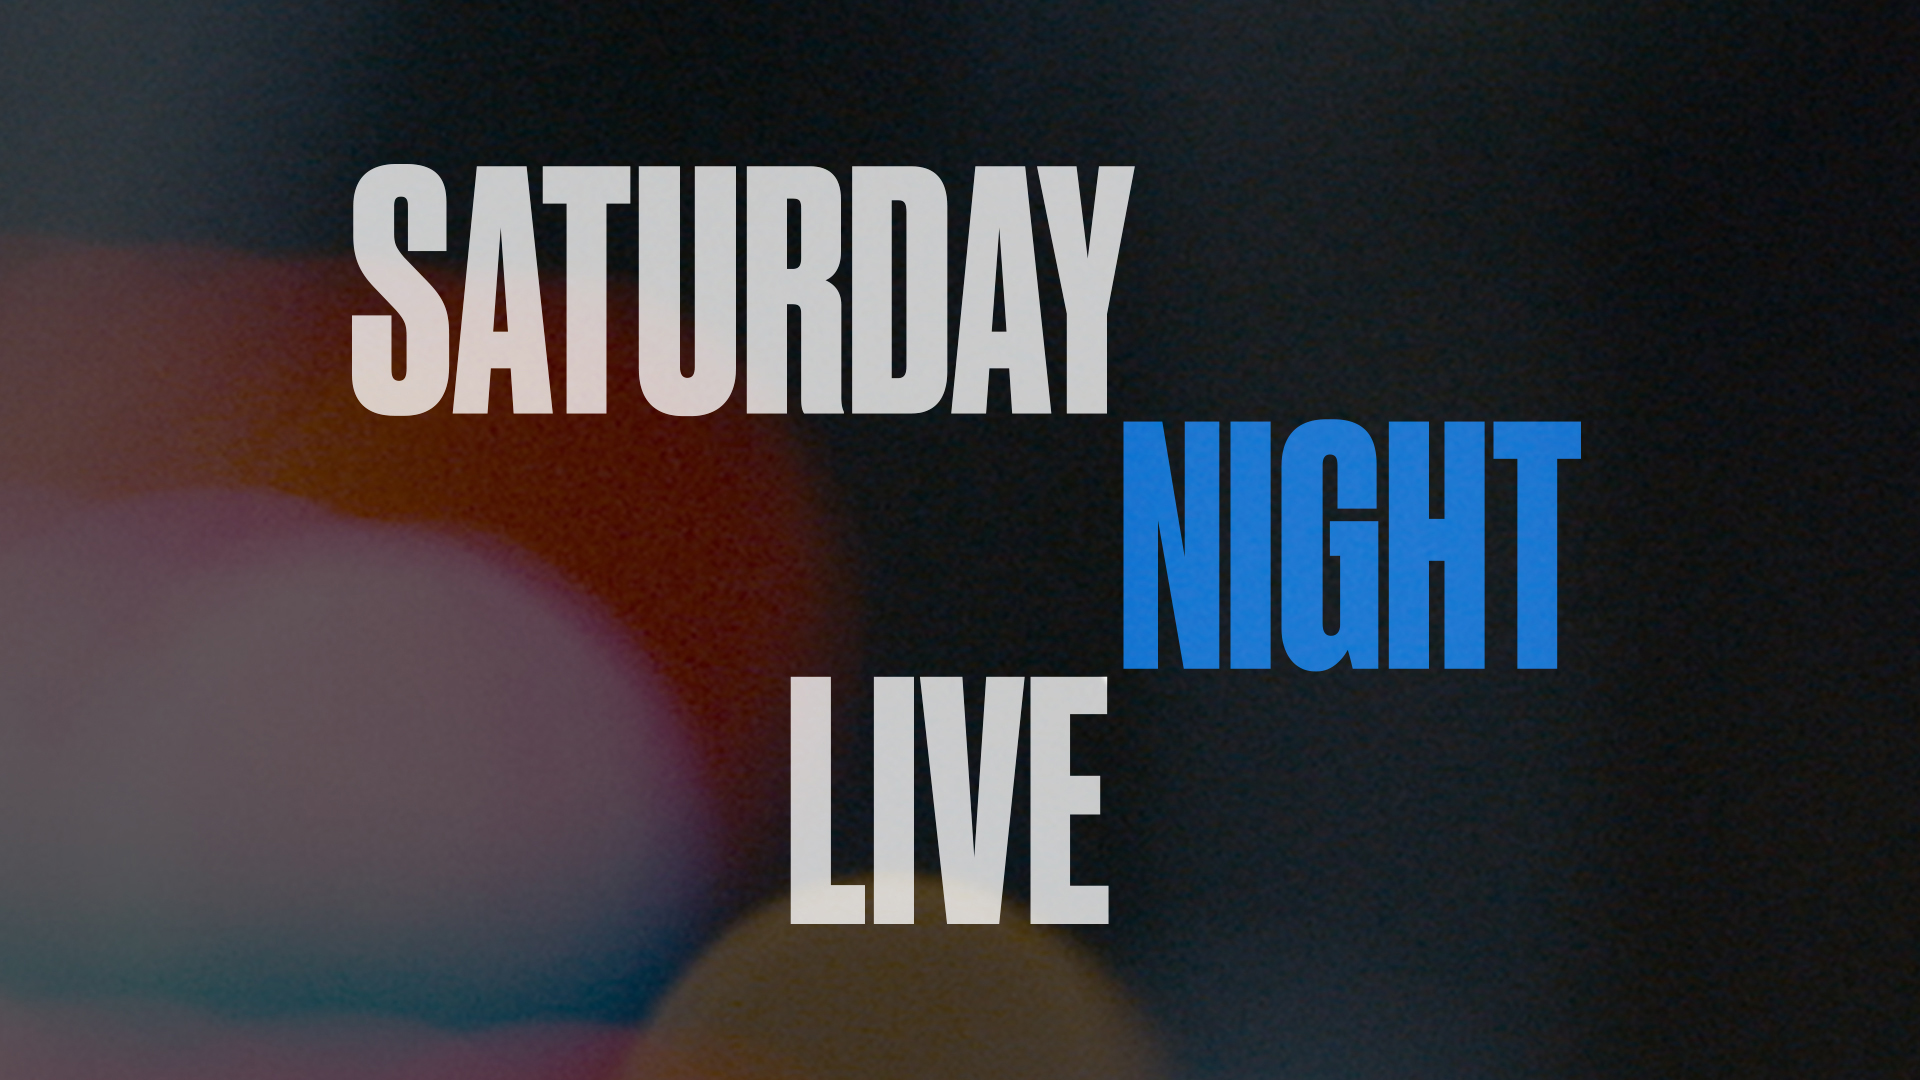 Saturday Night Live Wallpapers